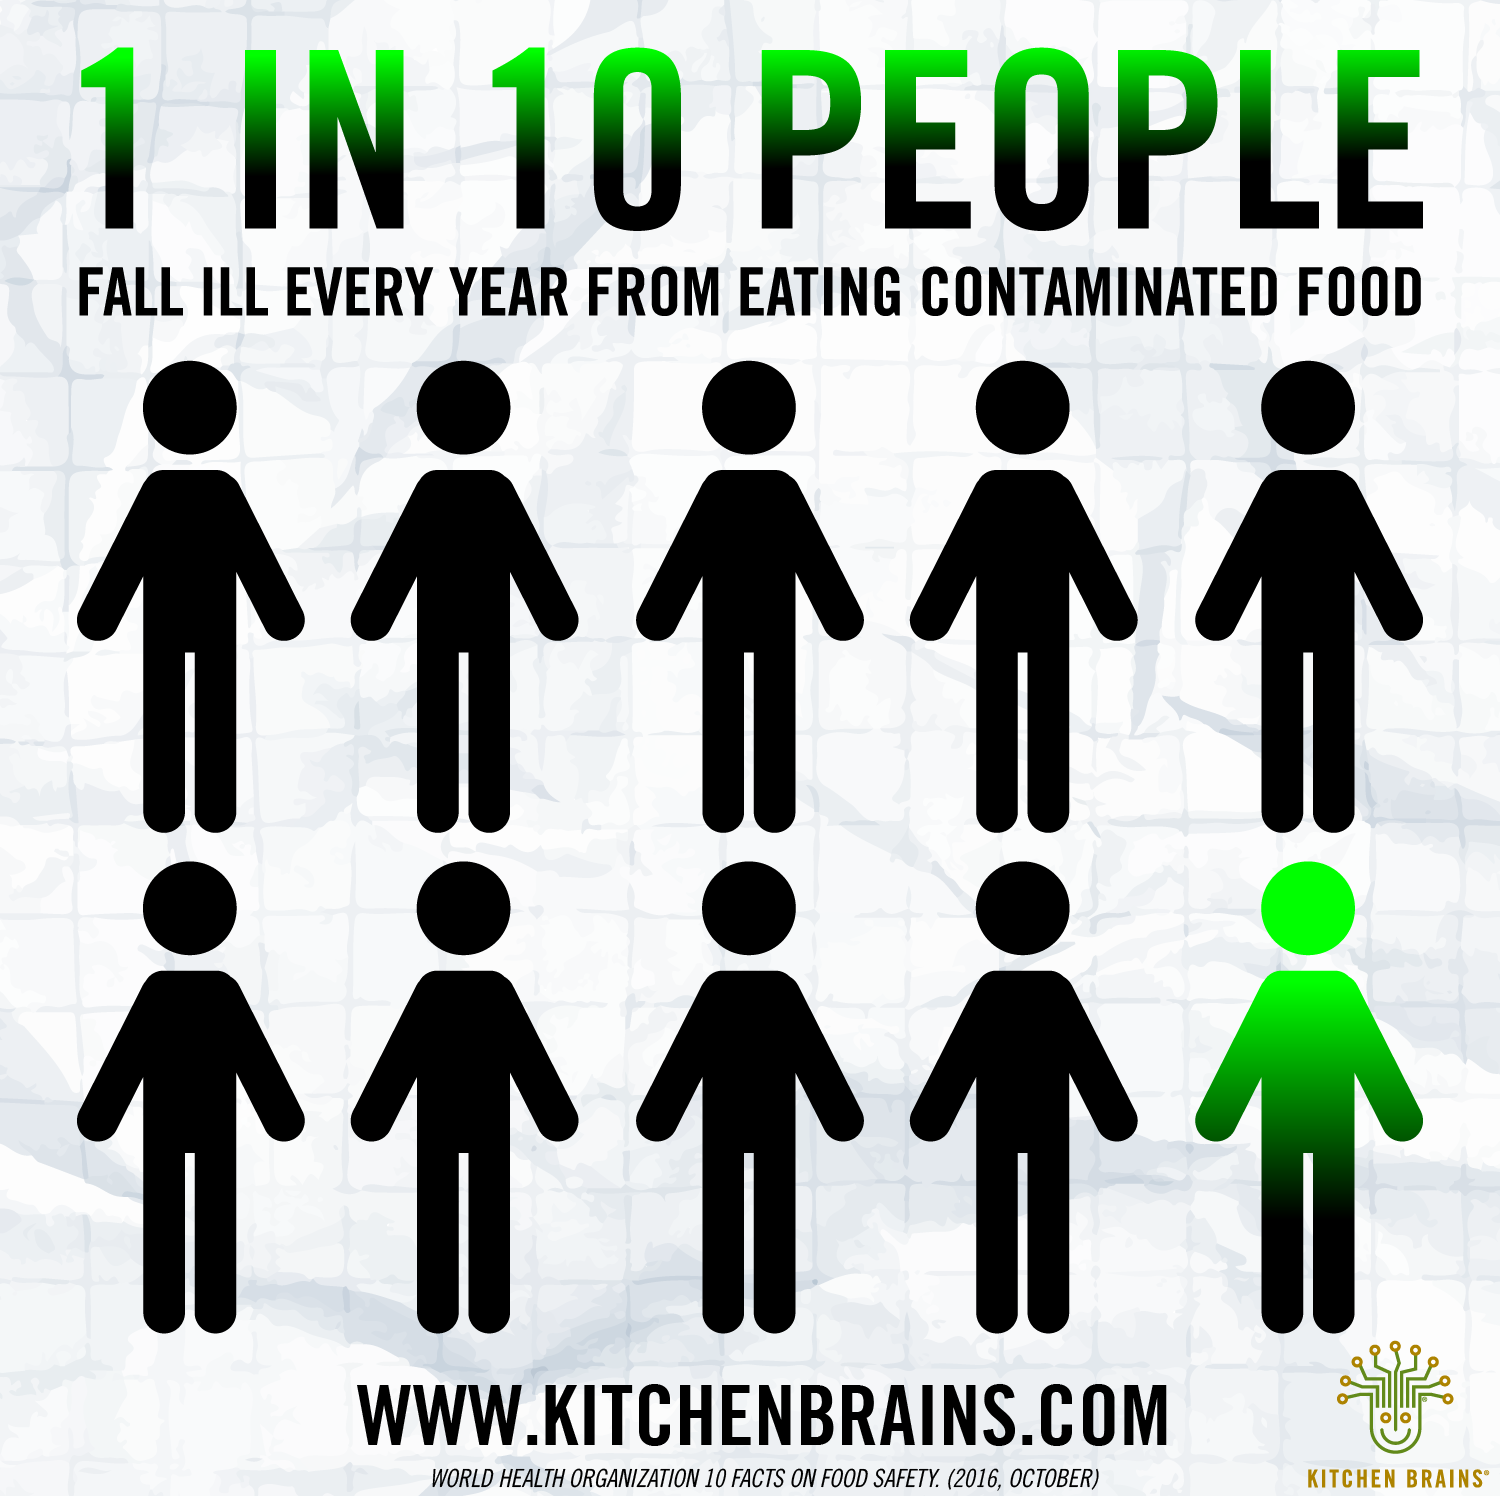 1 in every 10 clipart clip art transparent library 1 in 10 people fall ill every year from eating contaminated food ... clip art transparent library